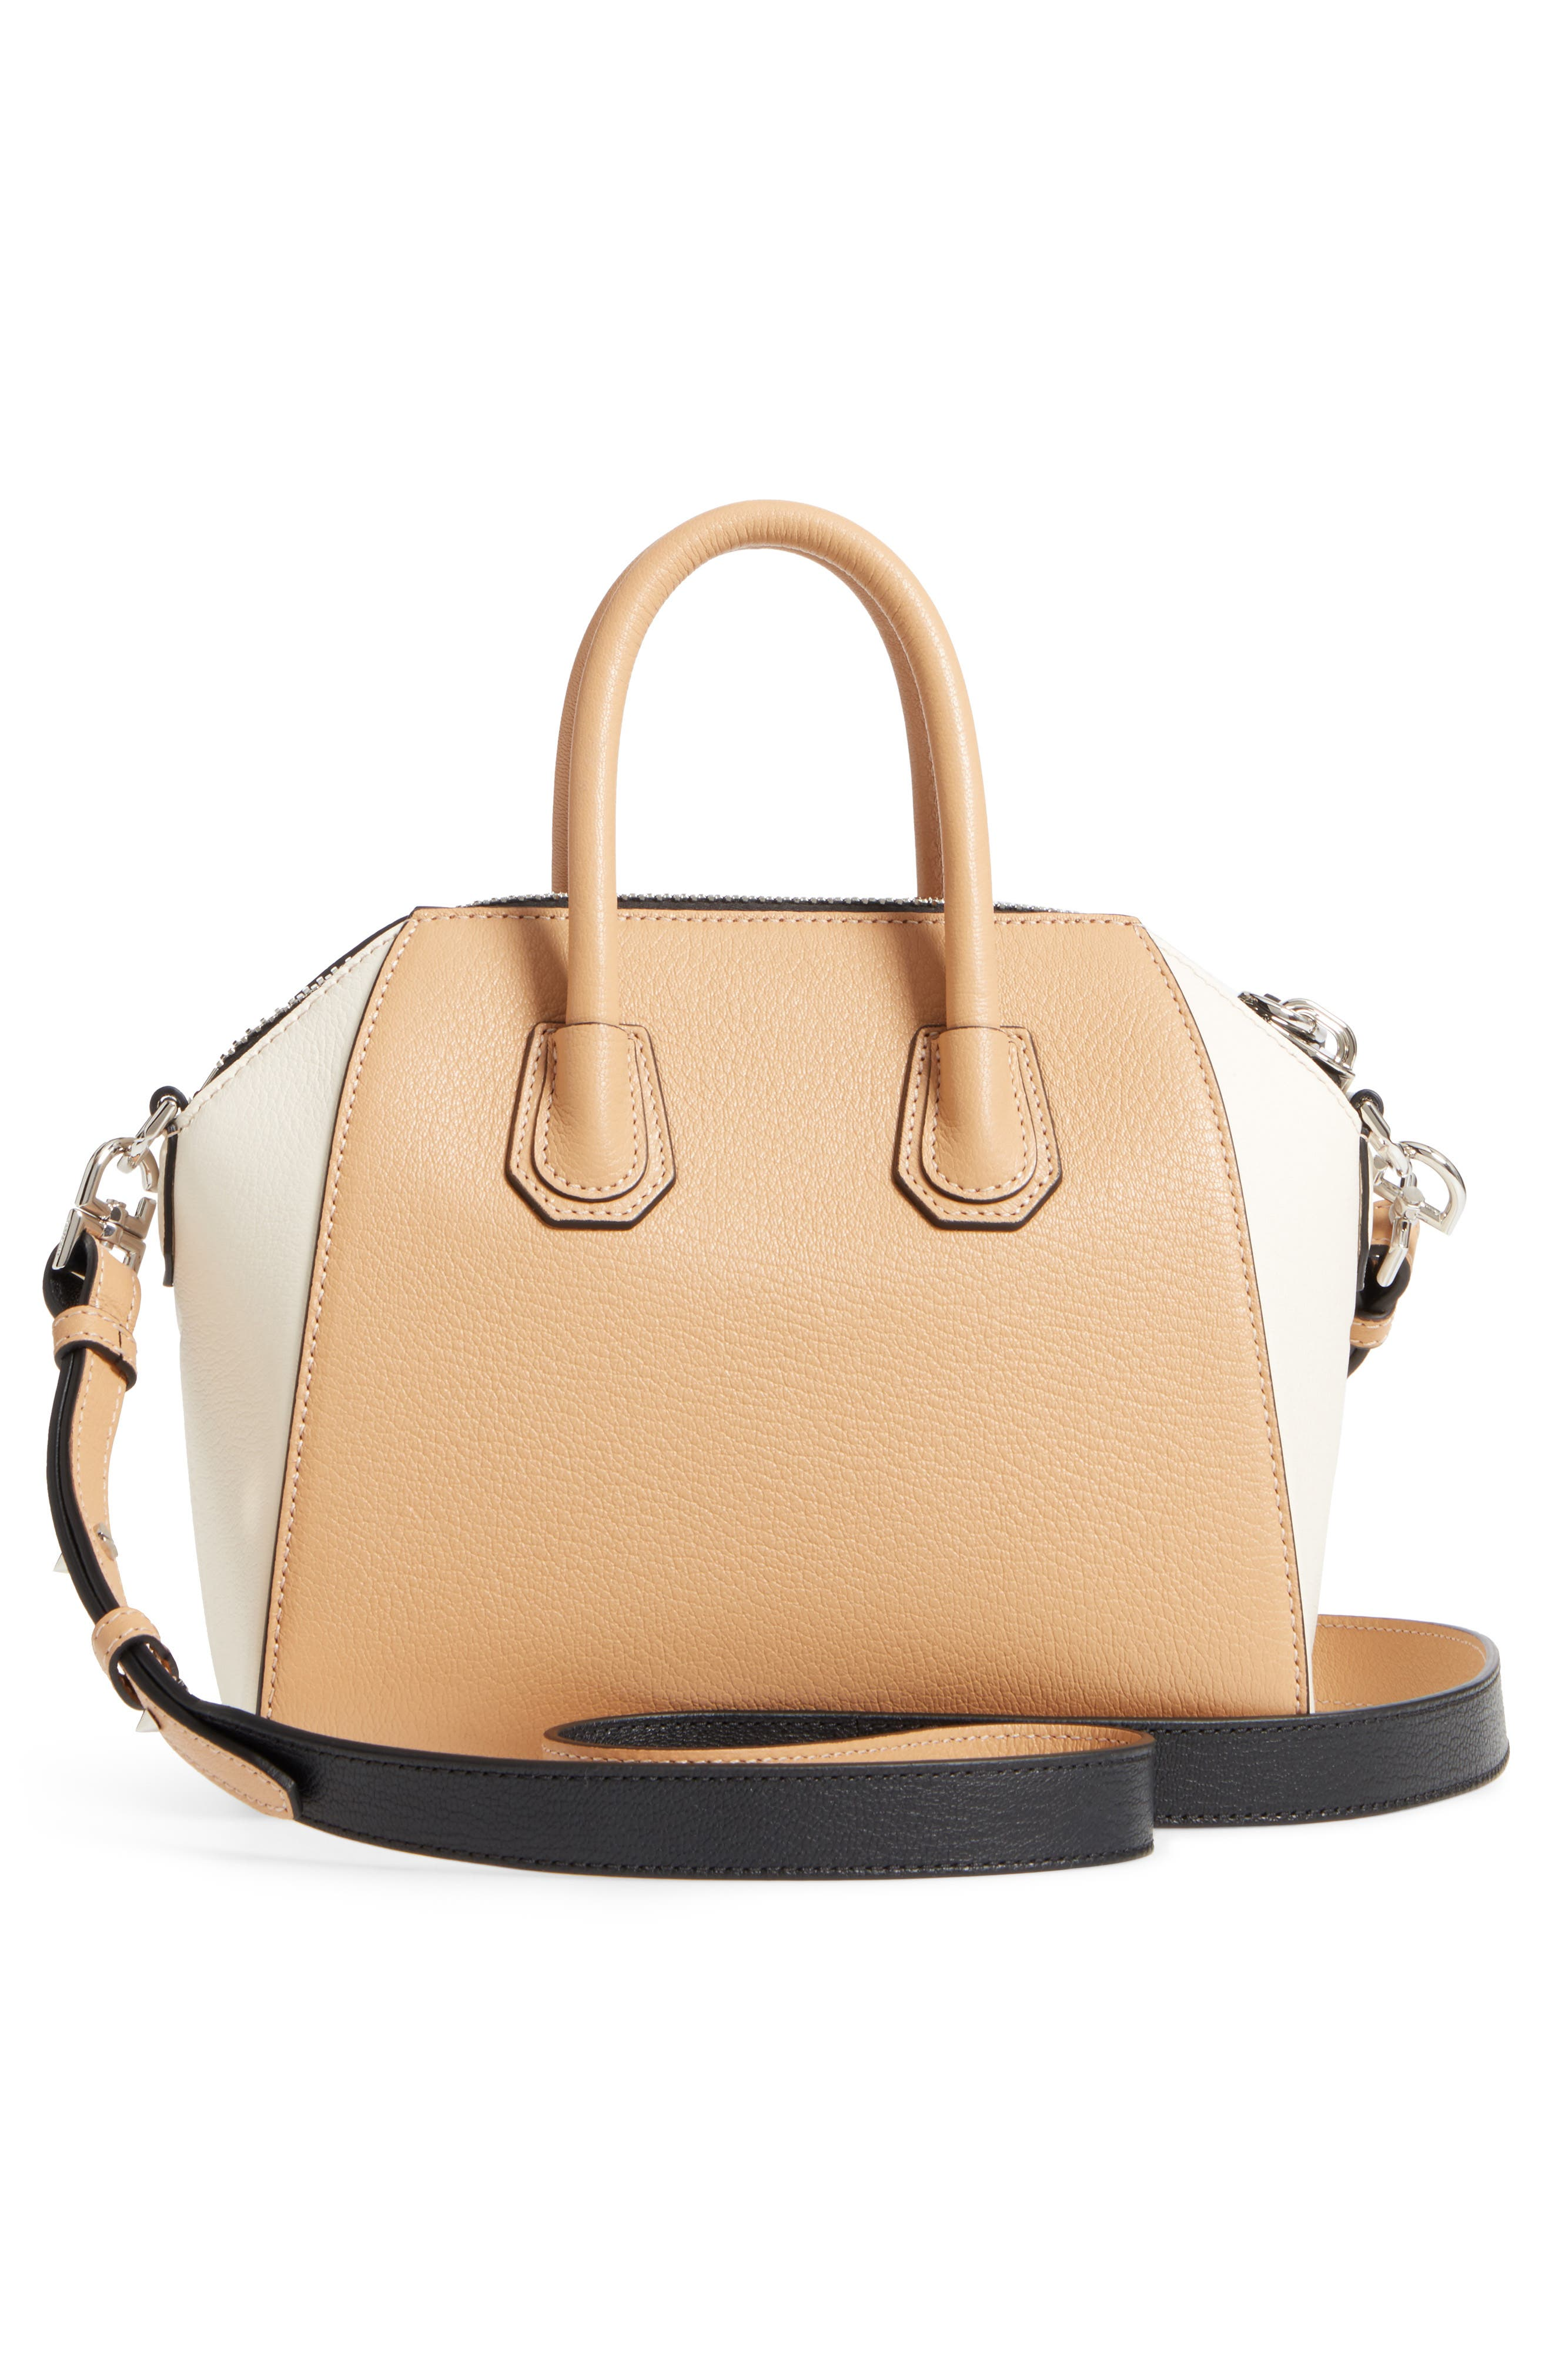 Mini Antigona Bicolor Sugar Leather Satchel,                             Alternate thumbnail 5, color,